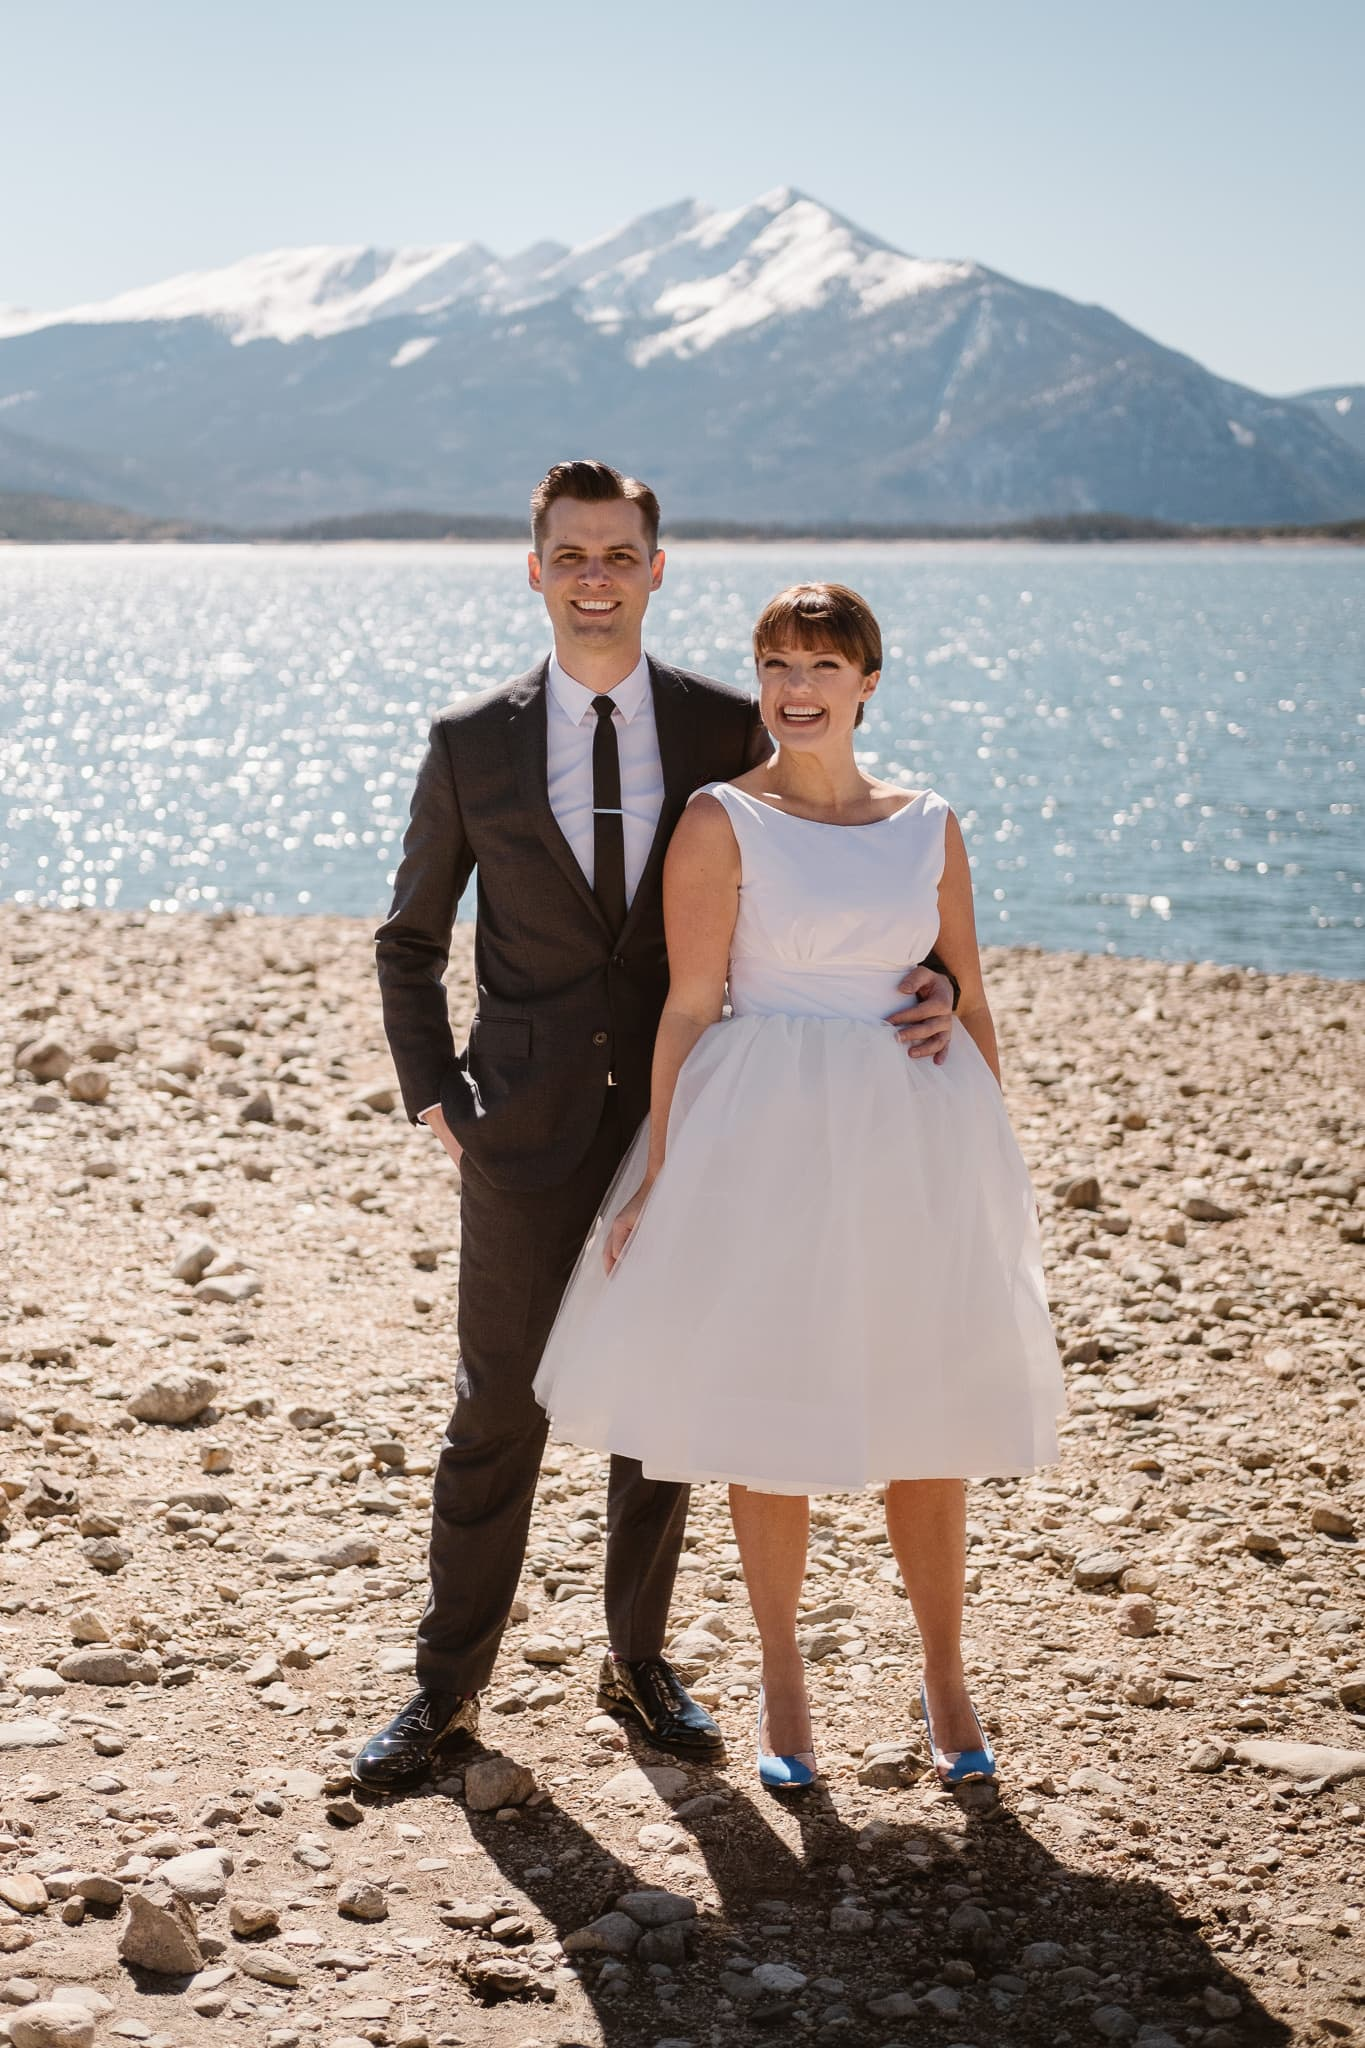 Bride and groom portraits at Lake Dillon in Summit County for Silverthorne Pavilion wedding, Colorado wedding photographer